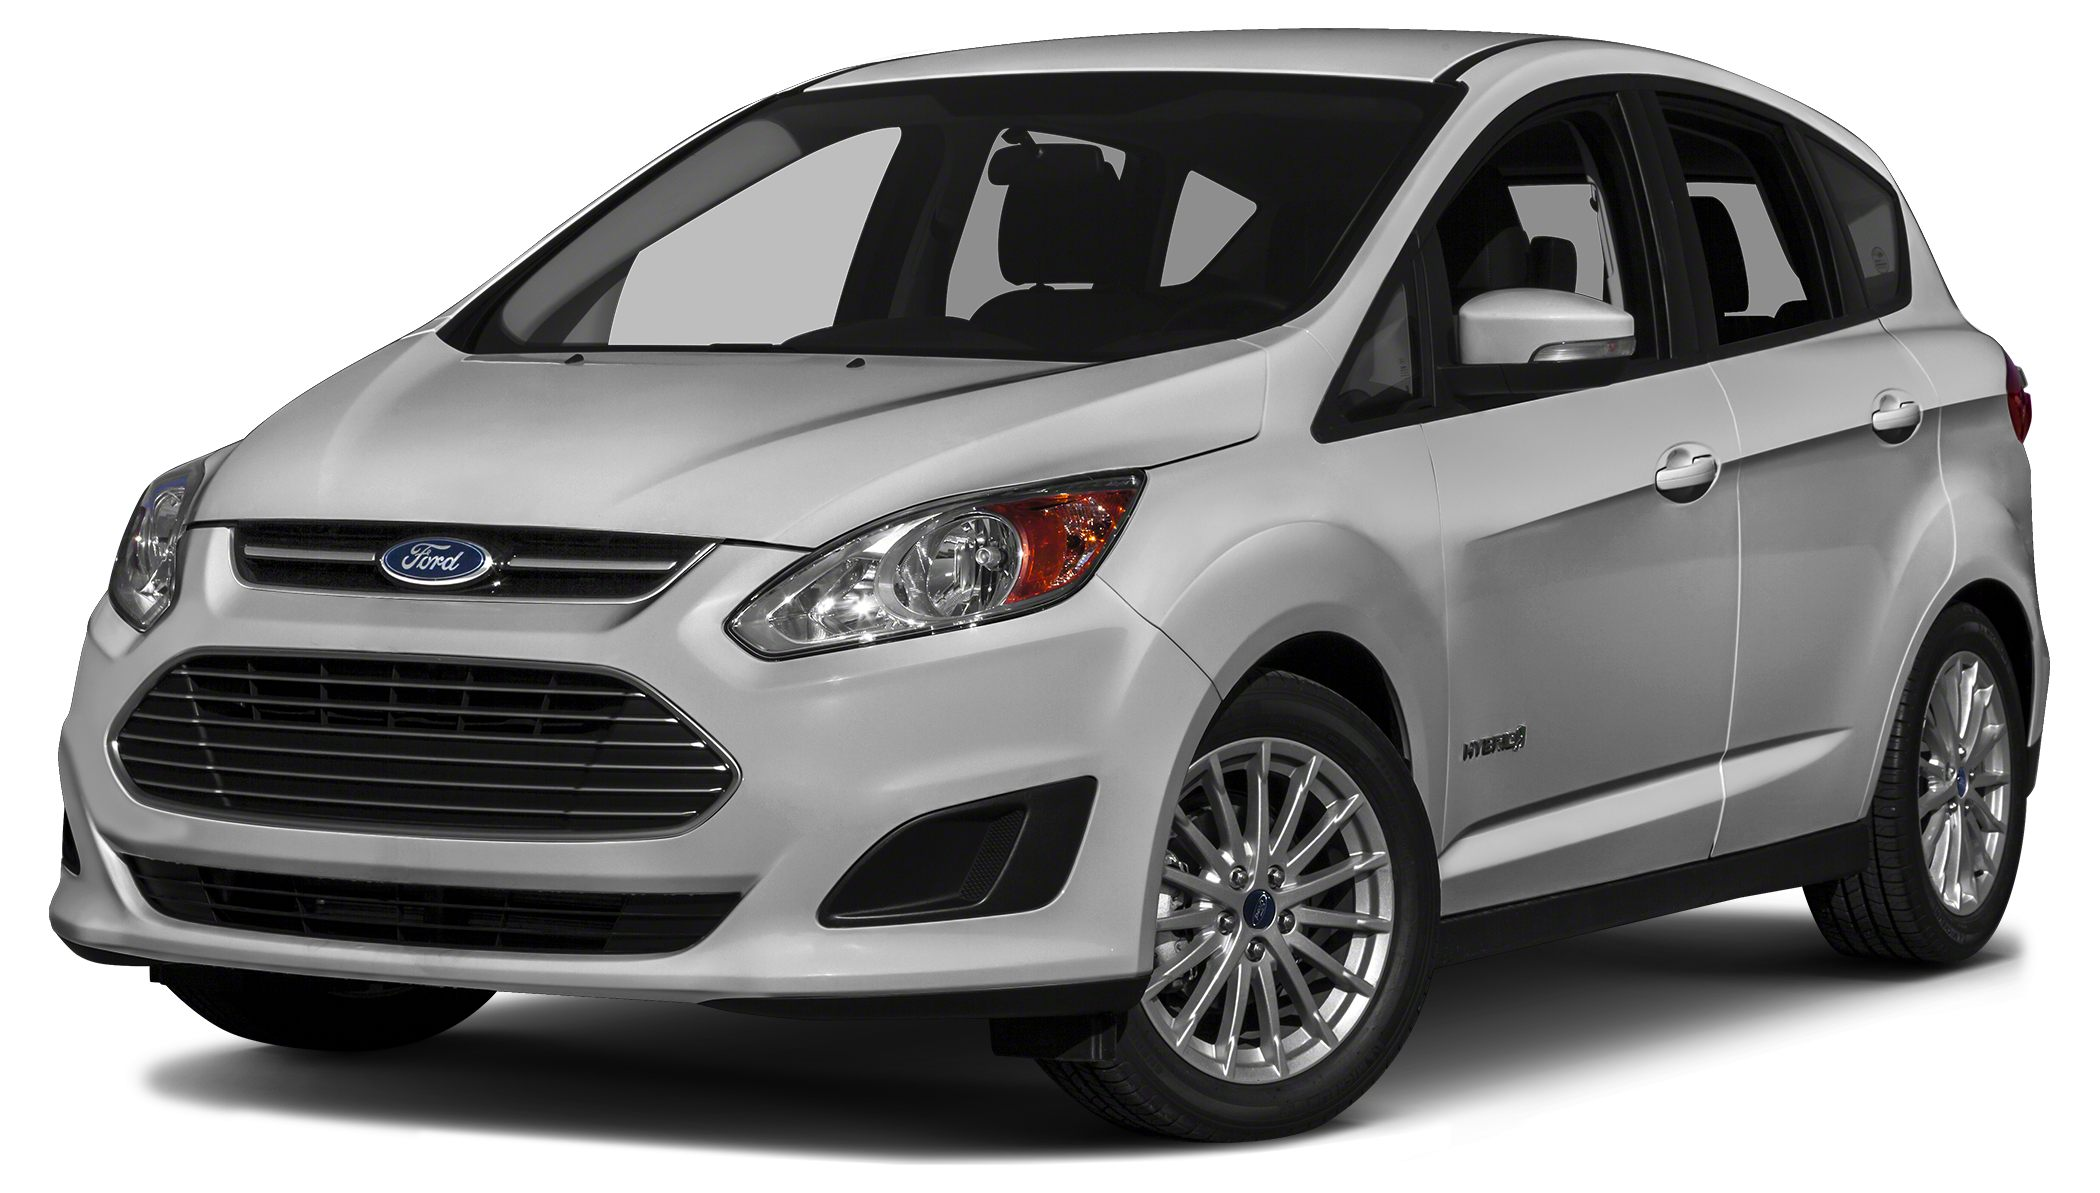 2015 Ford C-Max Hybrid SE Come drive some fun Room enough to roll out the red carpet Buy a new H